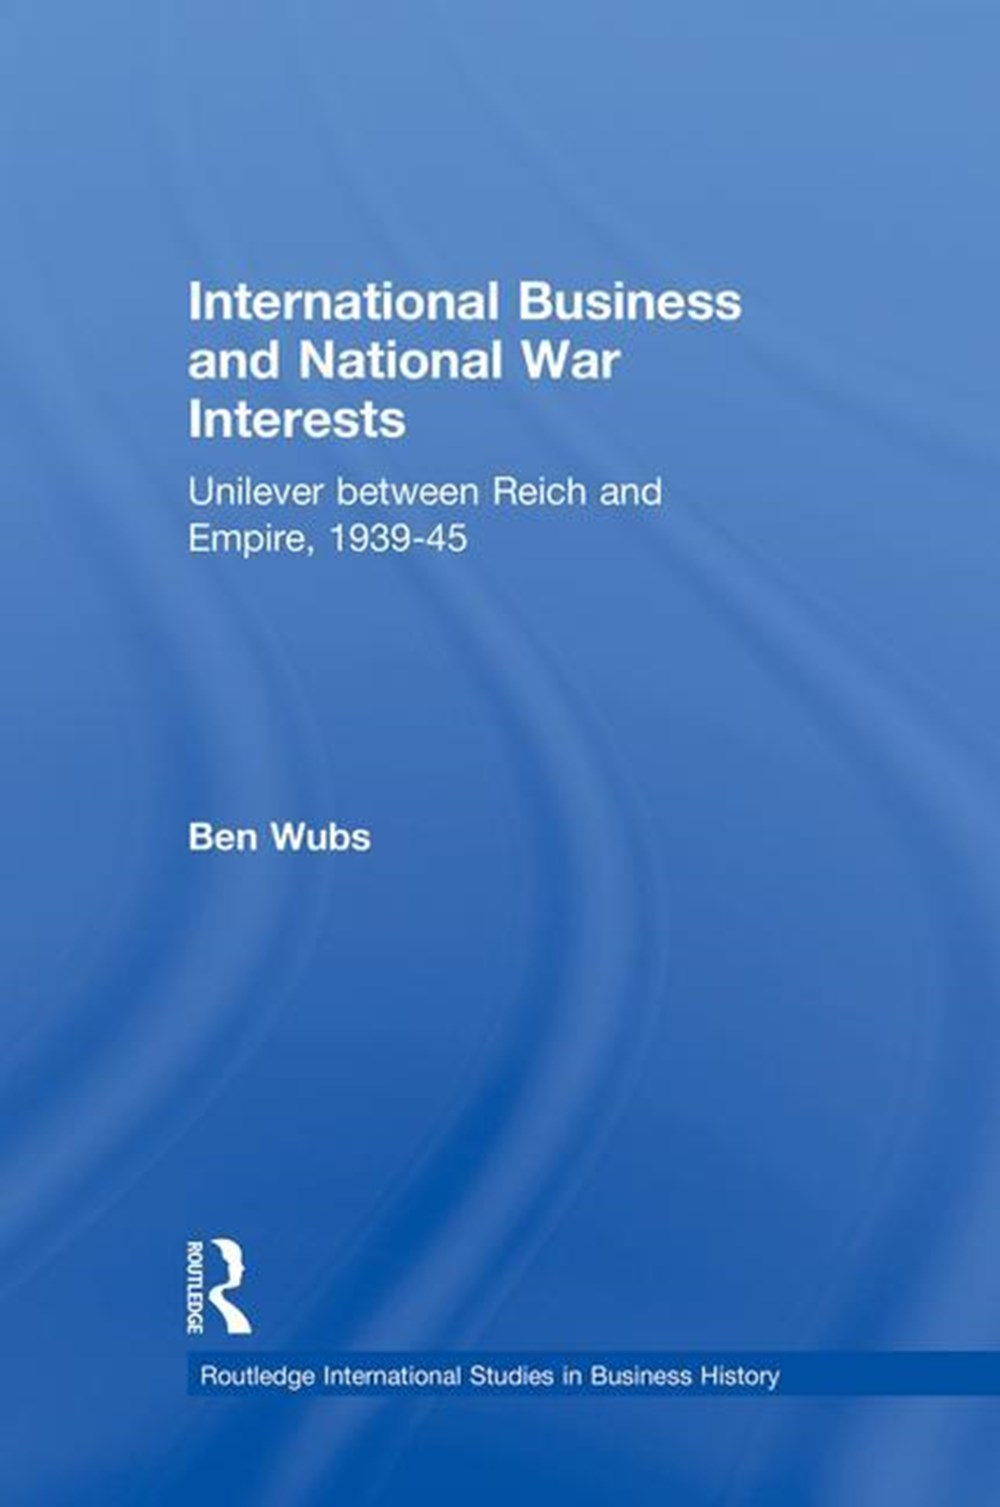 International Business and National War Interests Unilever between Reich and empire, 1939-45